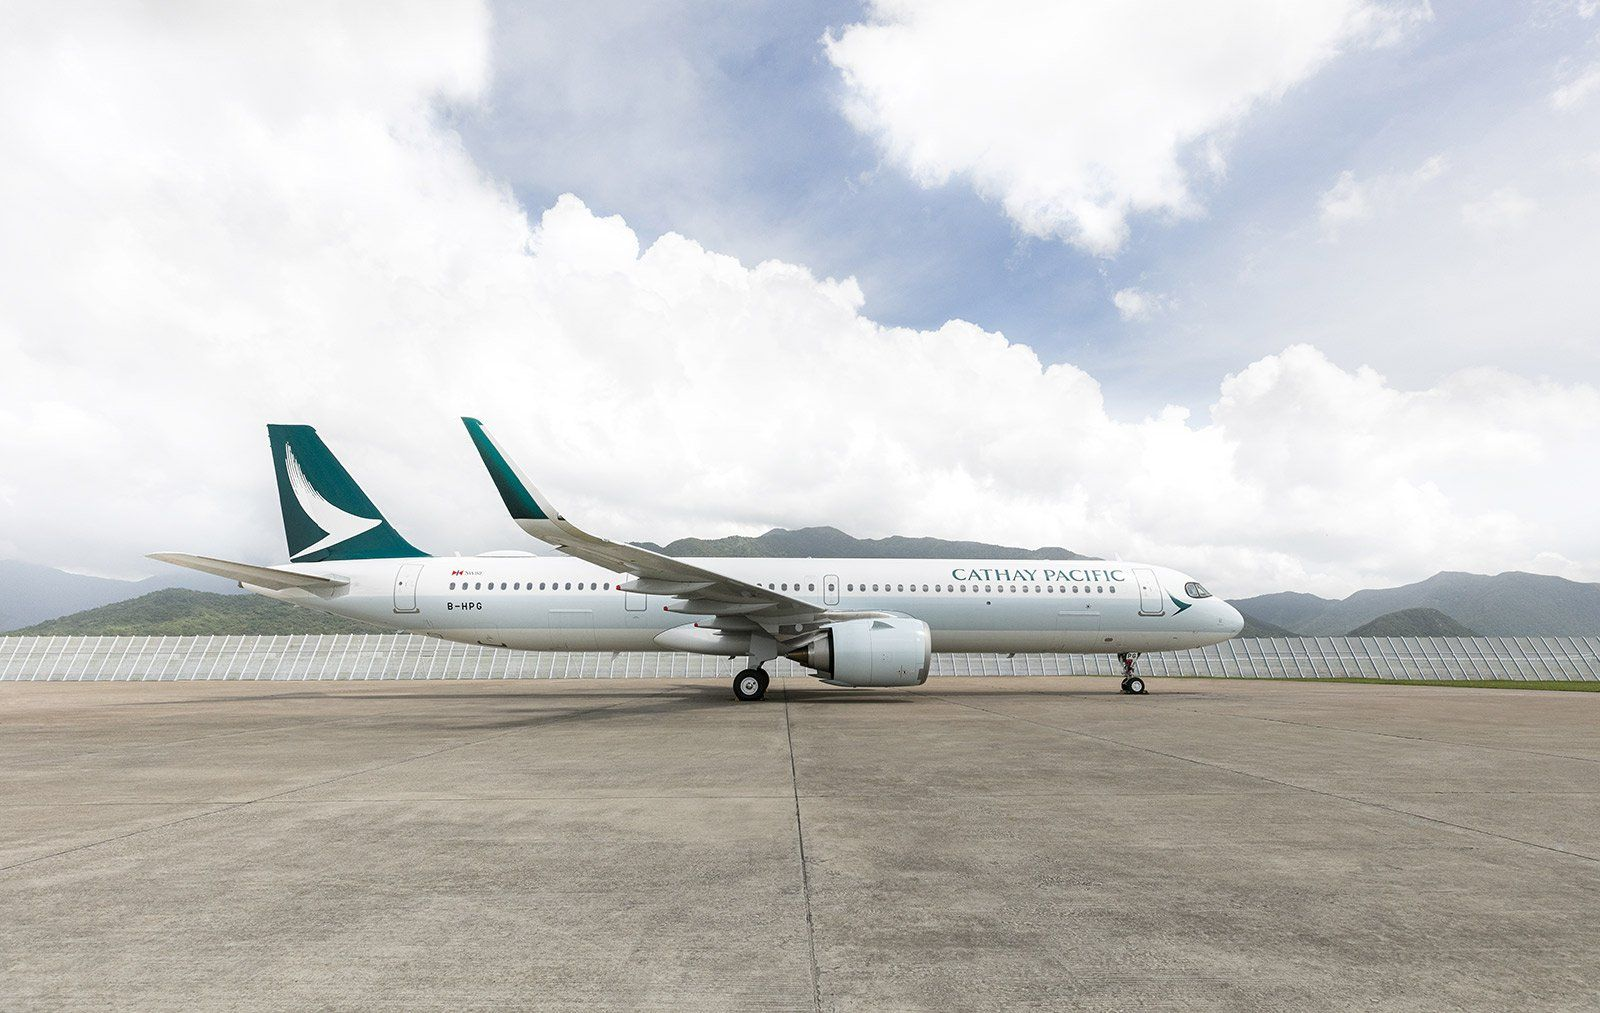 8 THINGS TO KNOW ABOUT CATHAY PACIFIC'S NEW A321NEO